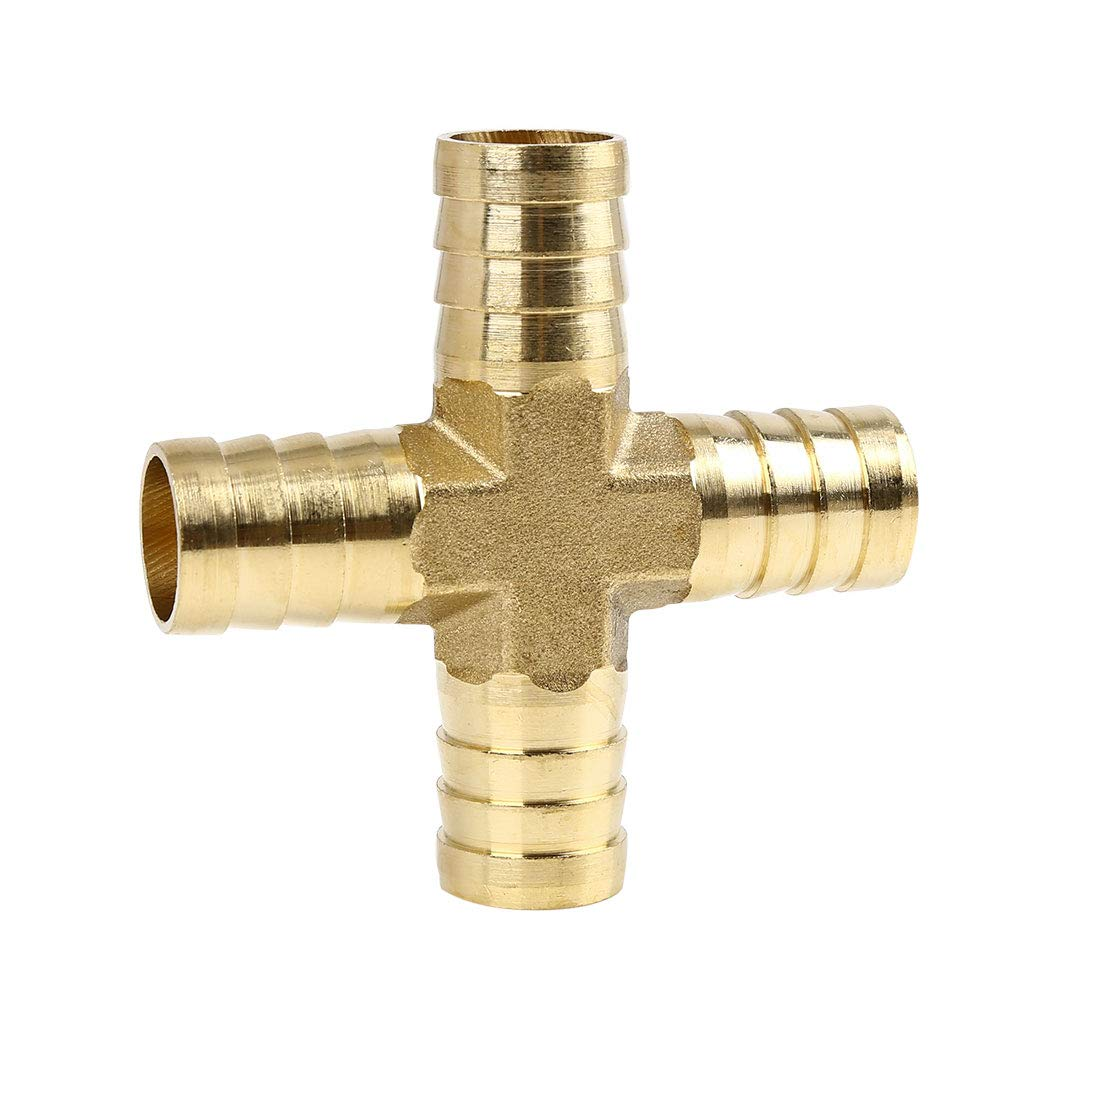 X AUTOHAUX 10mm Brass Hose Barb Cross Fitting 4 Ways Joiner for Air Water Oil